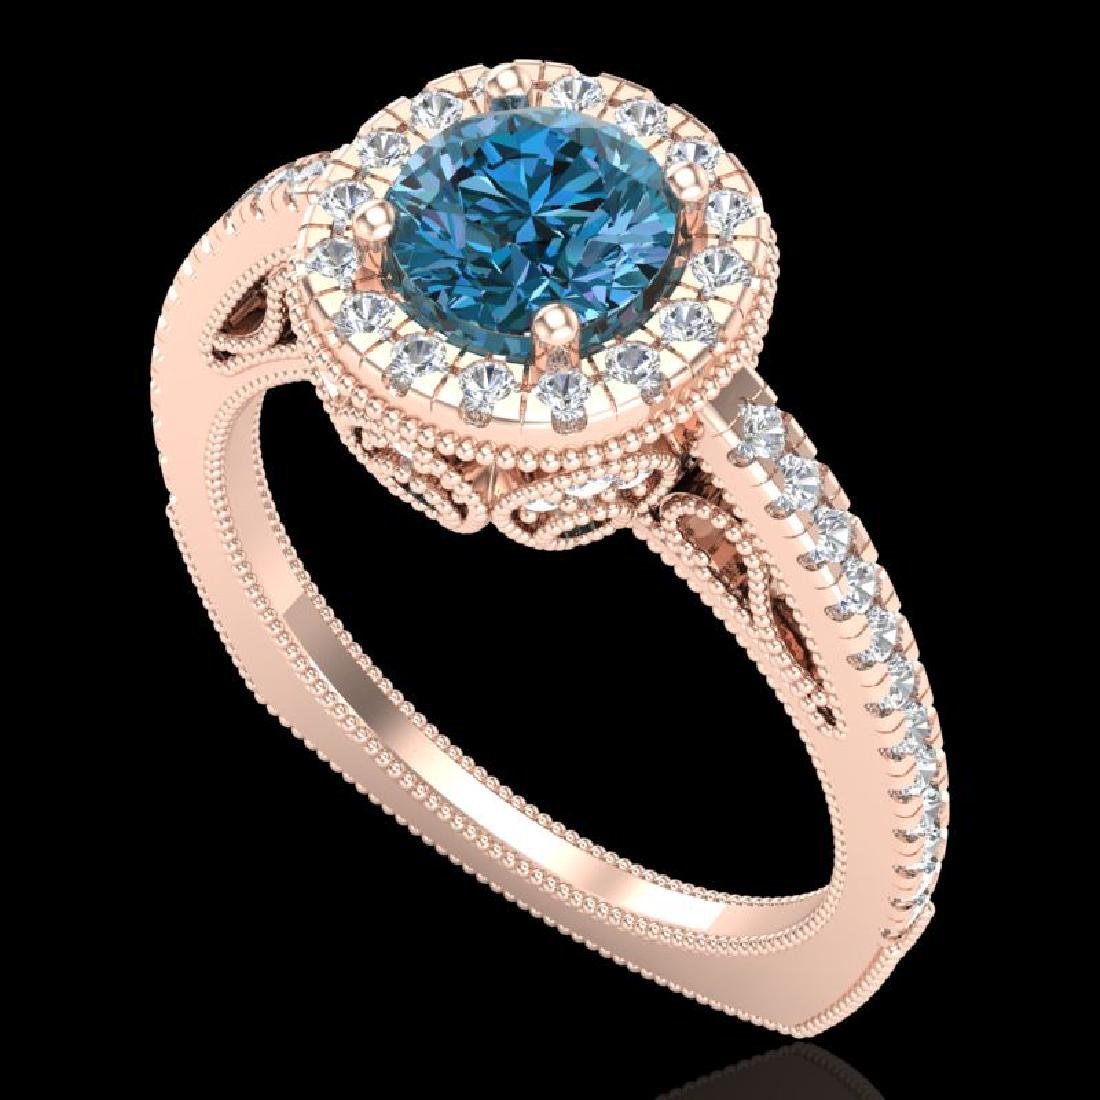 1.55 CTW Fancy Intense Blue Diamond Solitaire Art Deco